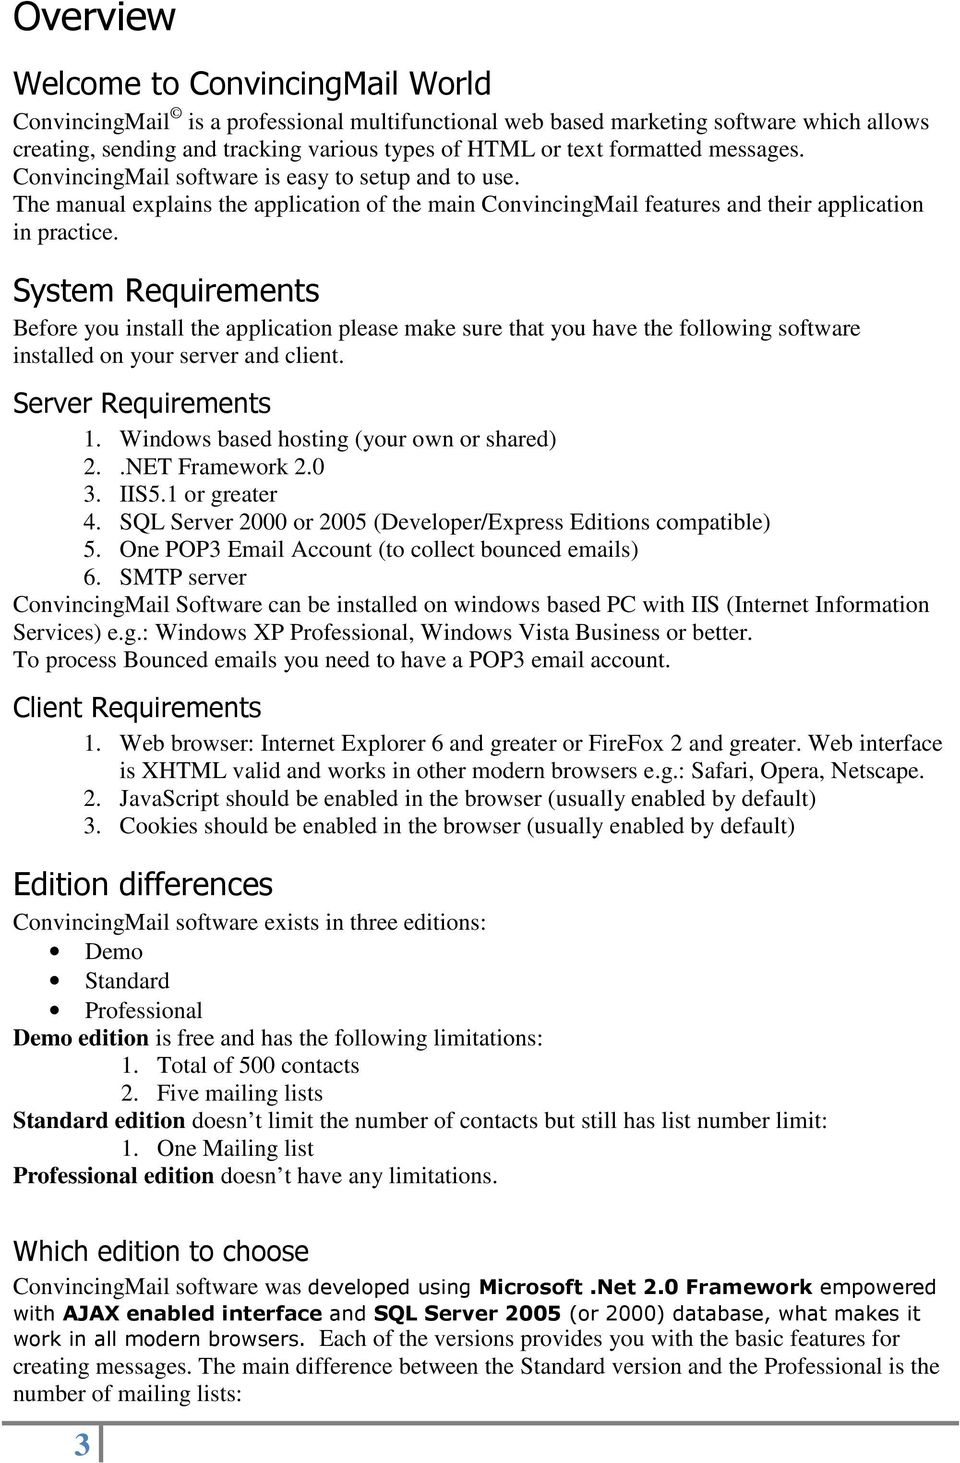 System Requirements Before you install the application please make sure that you have the following software installed on your server and client. Server Requirements 1.